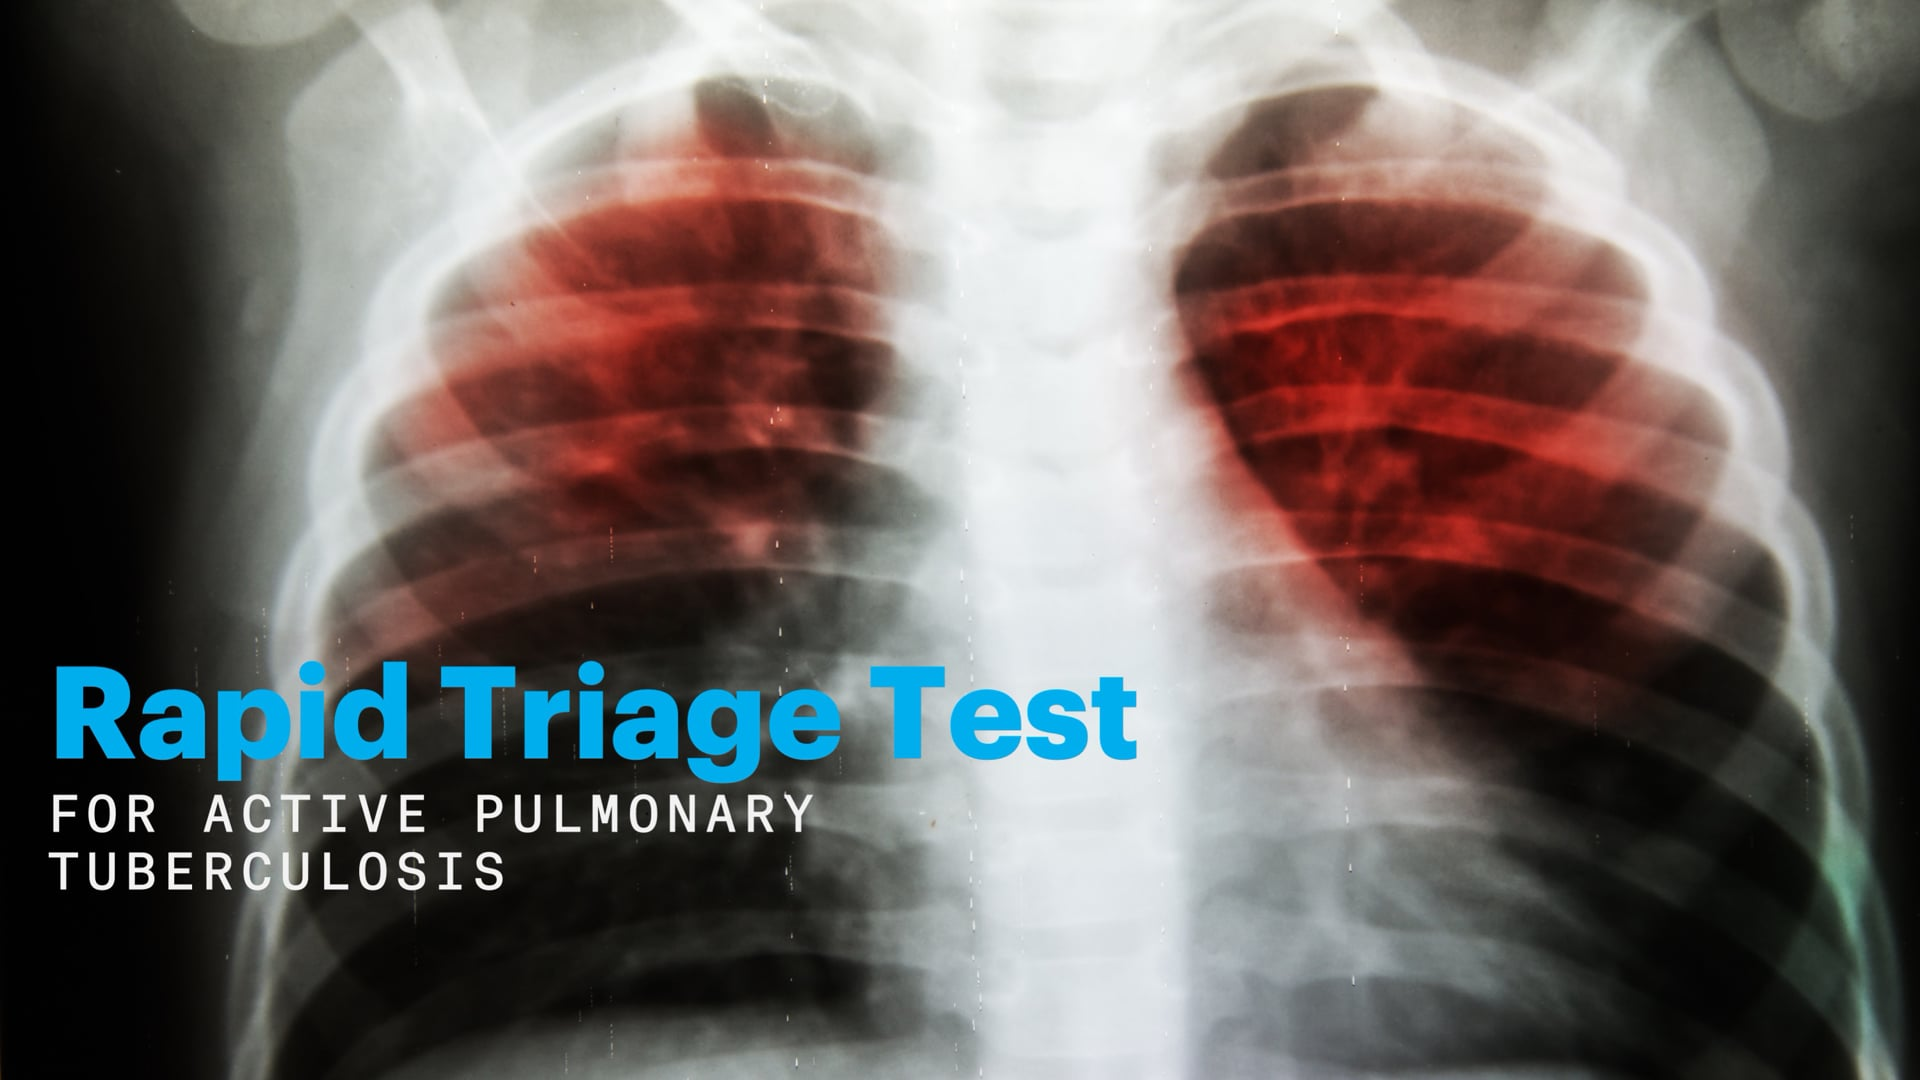 Rapid Triage Test for Active Pulmonary Tuberculosis